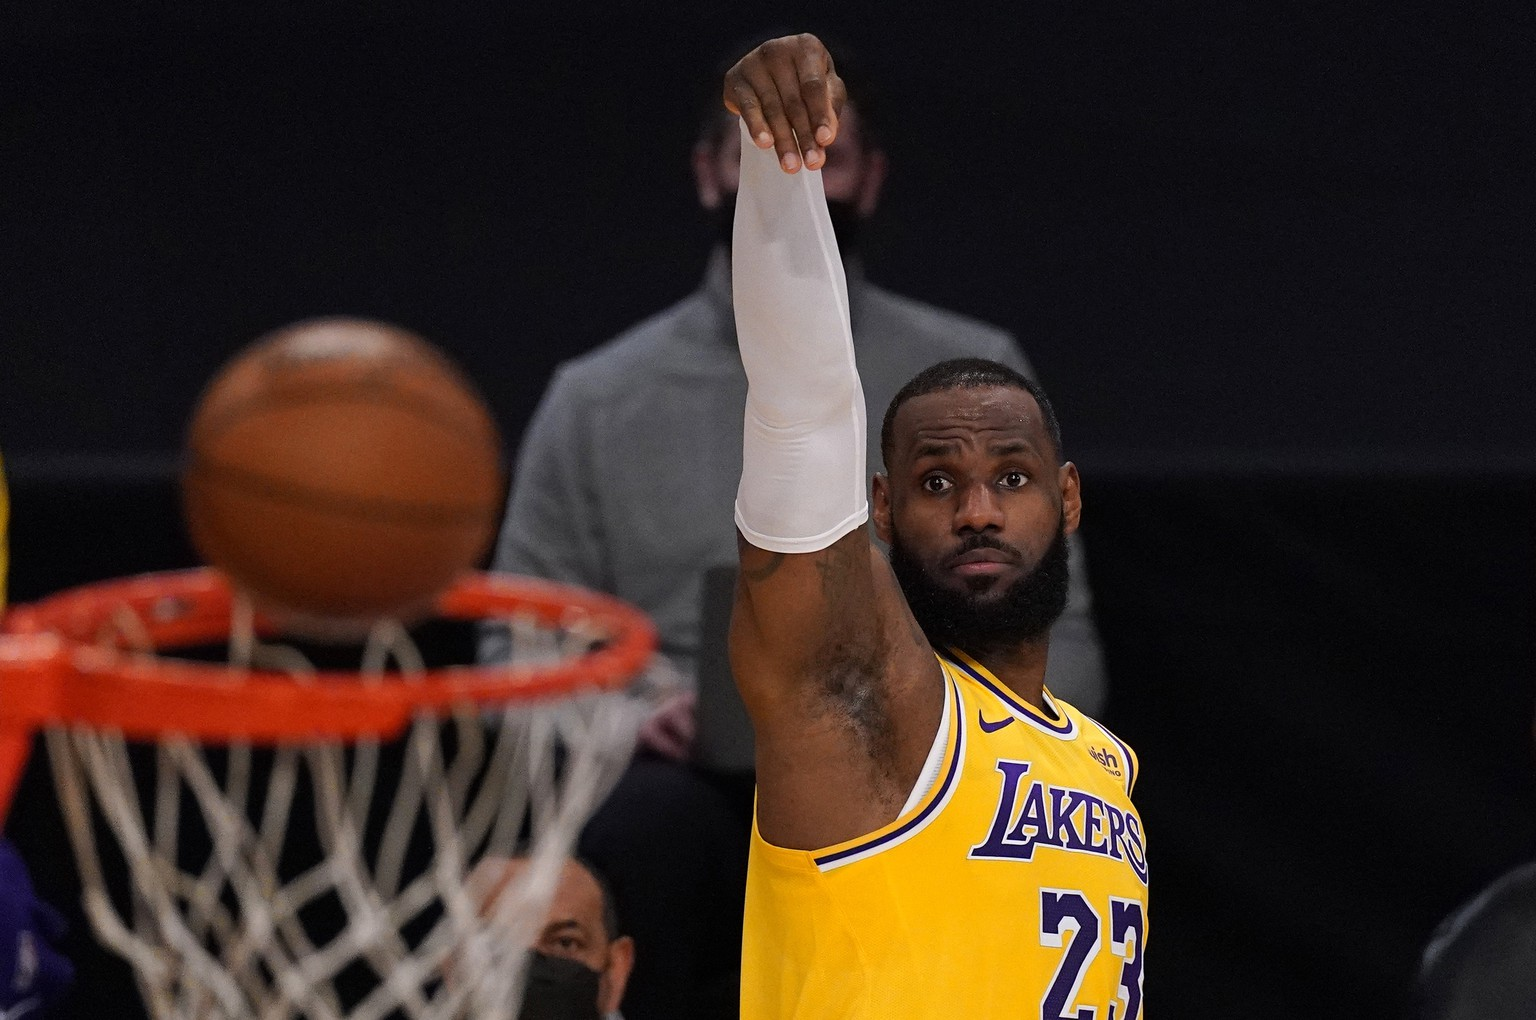 Los Angeles Lakers forward LeBron James shoots during the first half of an NBA basketball game against the Oklahoma City Thunder Monday, Feb. 8, 2021, in Los Angeles. (AP Photo/Mark J. Terrill) LeBron James